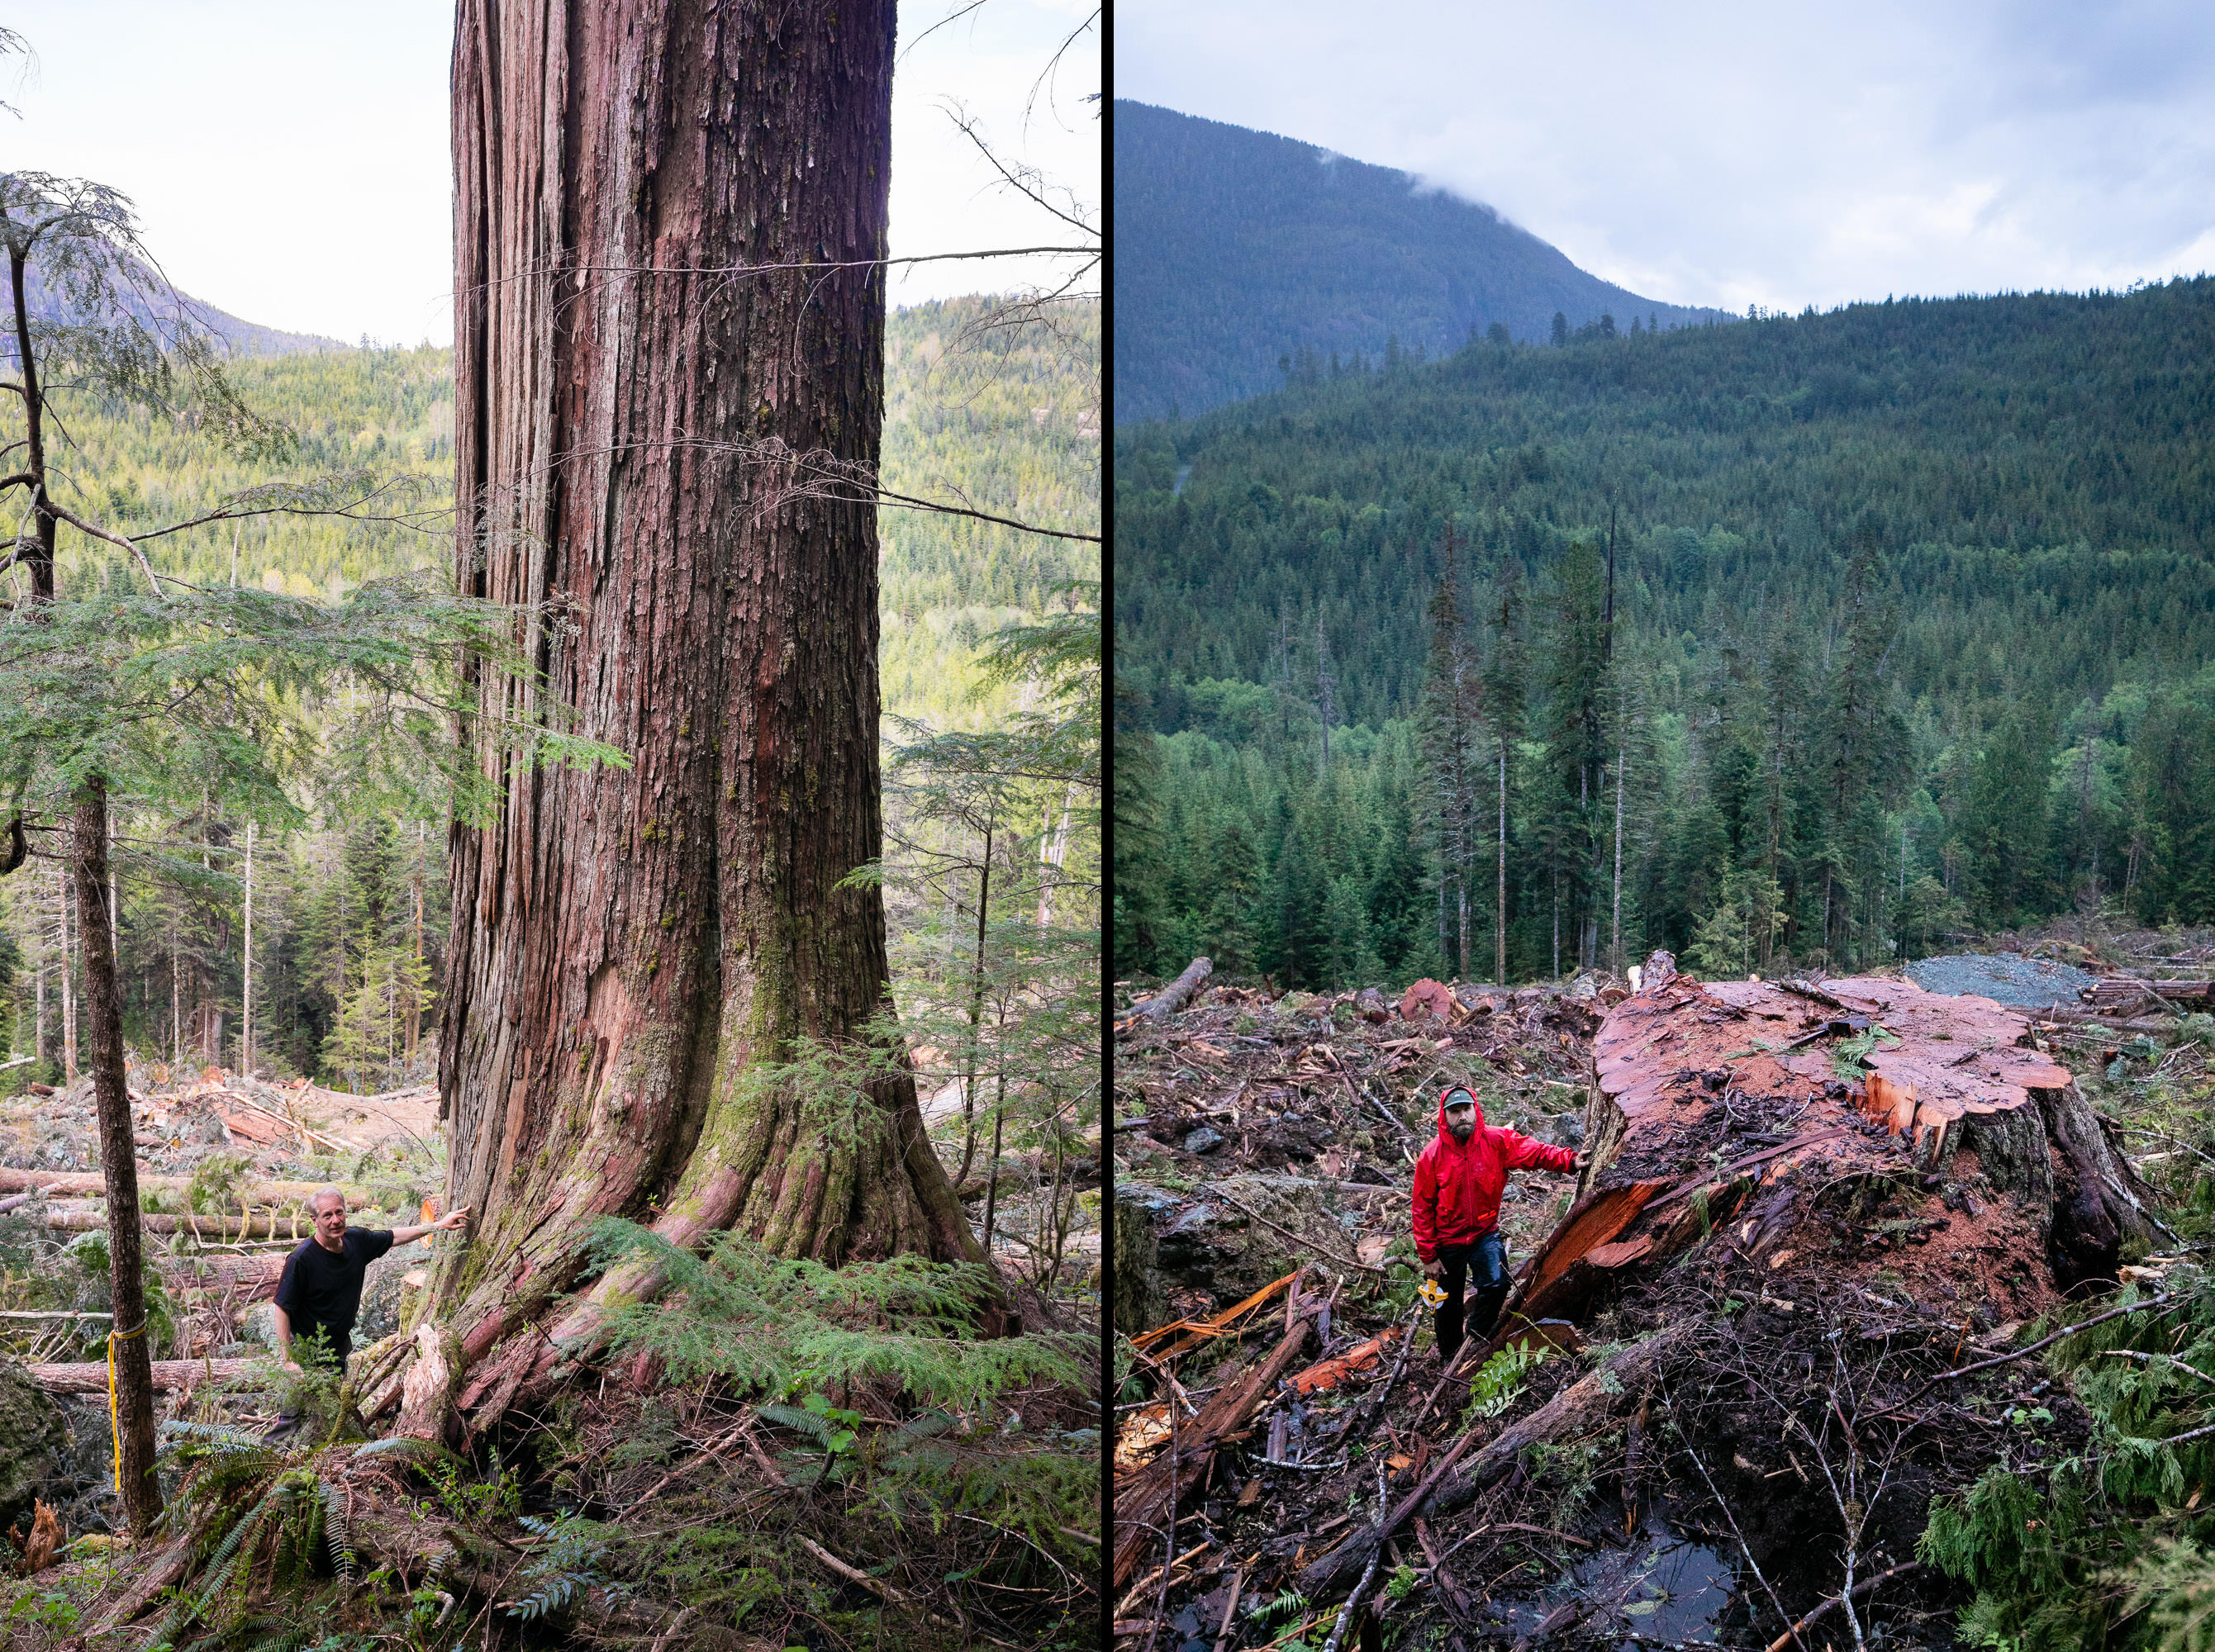 A before and after photo of a large old-growth red cedar logged in the Nahmint Valley on Vancouver Island. (TJ Watt)